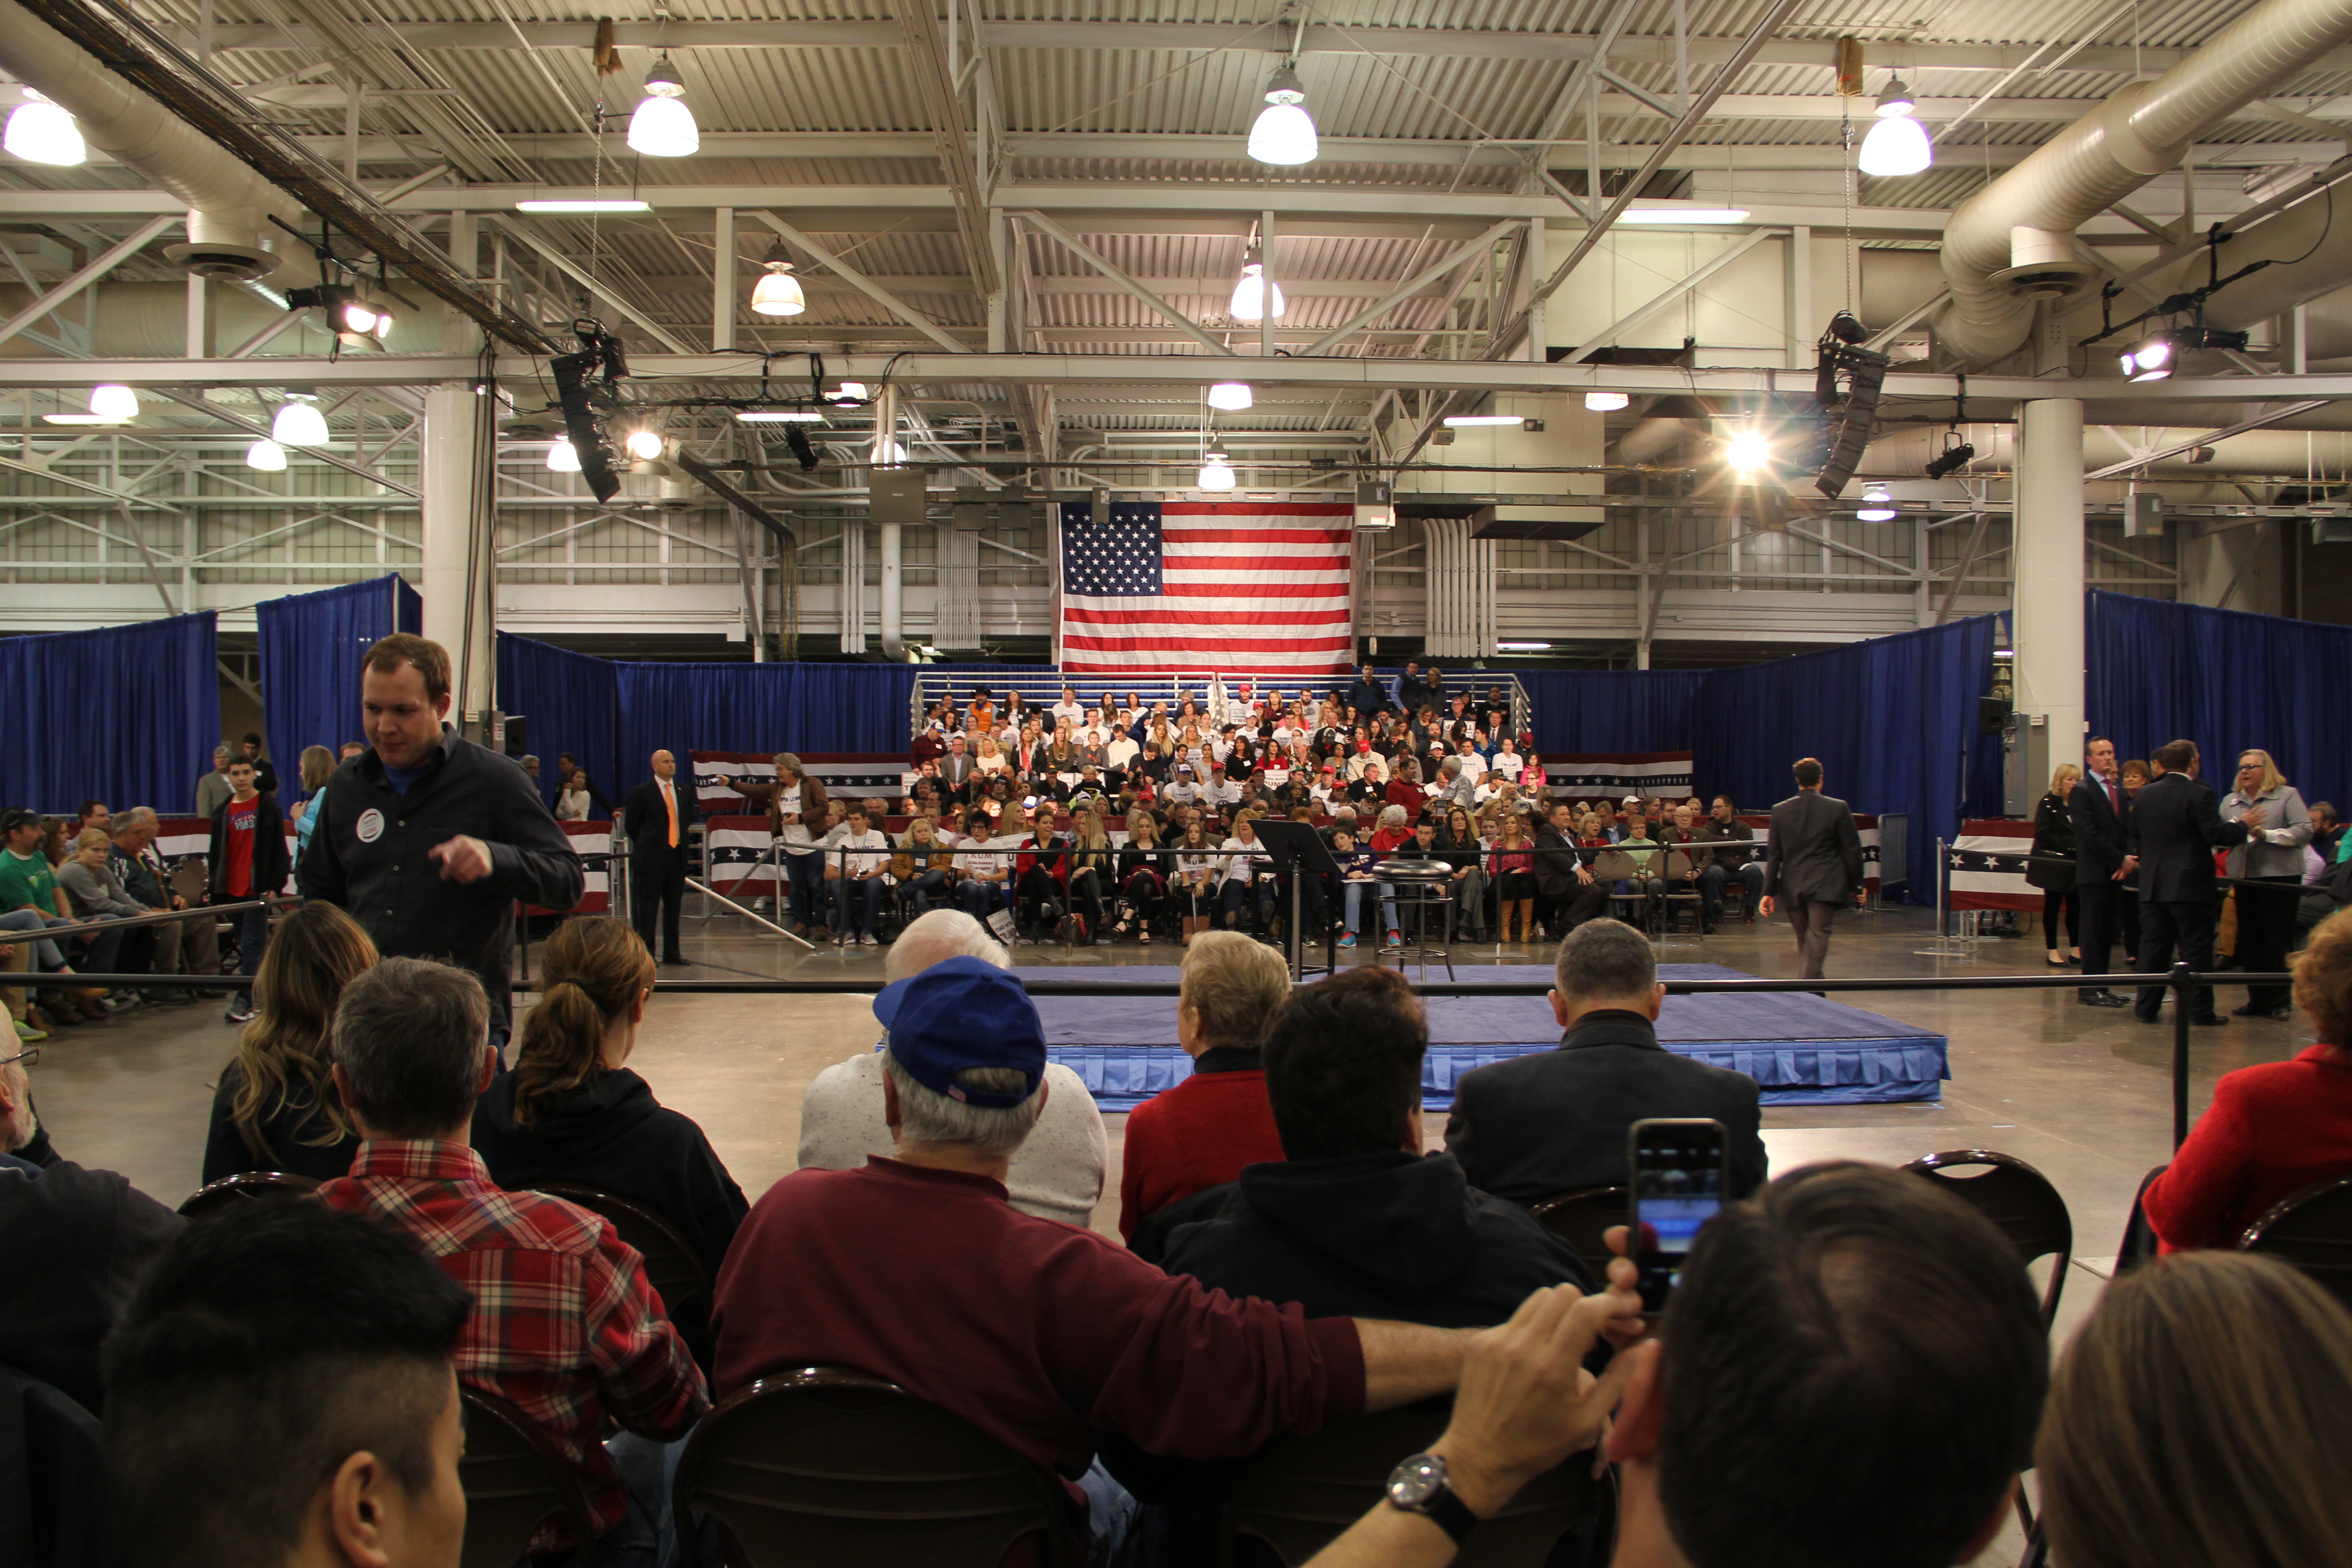 Stage set for Donald Trump at a town hall in Des Moines. Photo by Katie Ramsey.